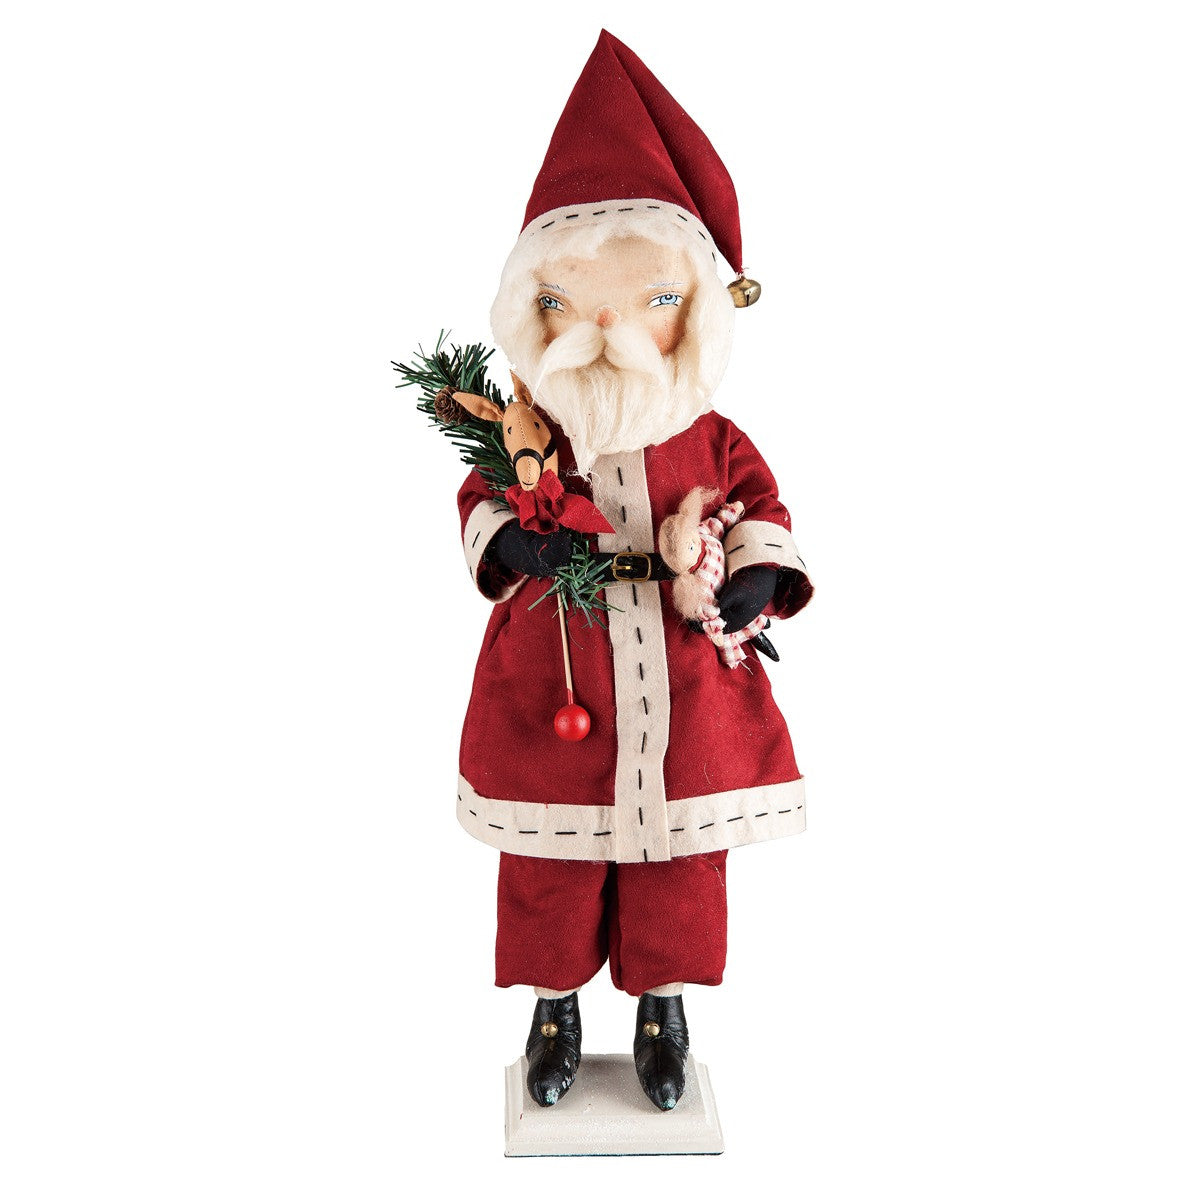 Sedrick Standing Santa - Joe Spencer Christmas Doll